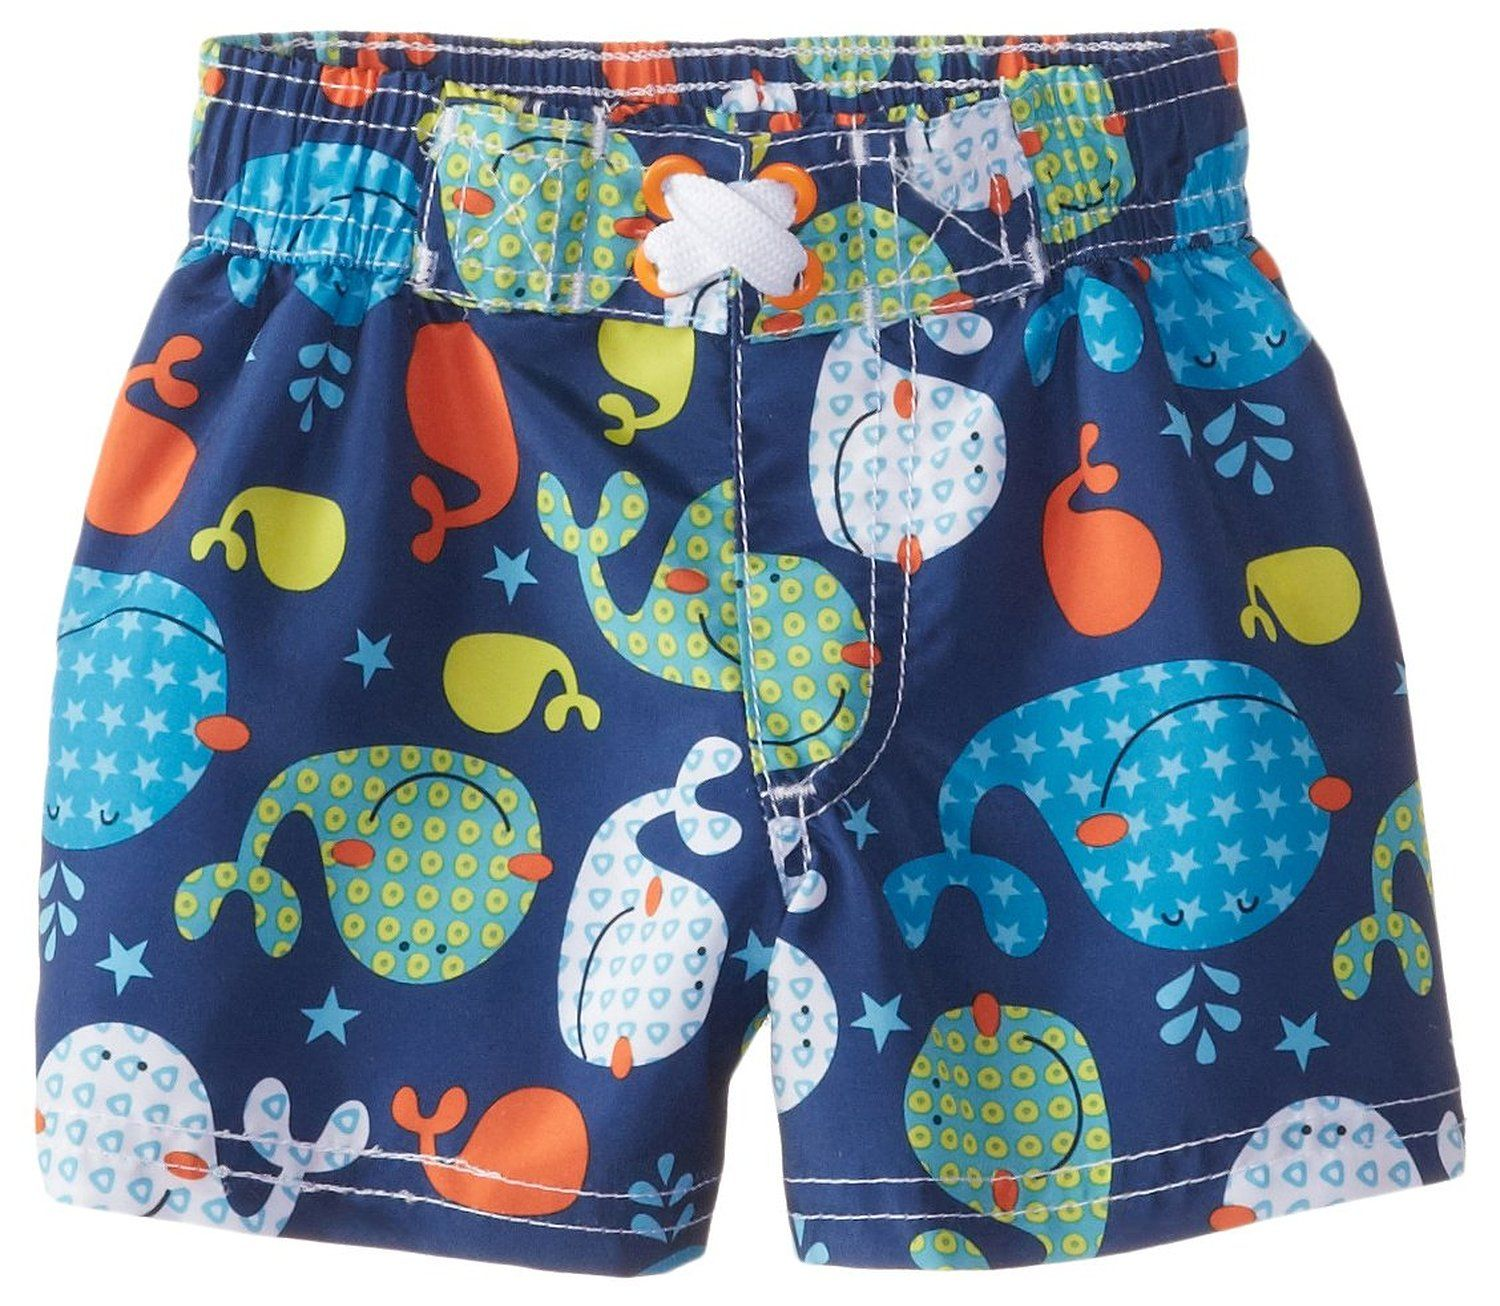 Sears Baby Clothes Endearing Whale Swim Trunks At Sears $11  Baby  Clothes  Pinterest  Swim